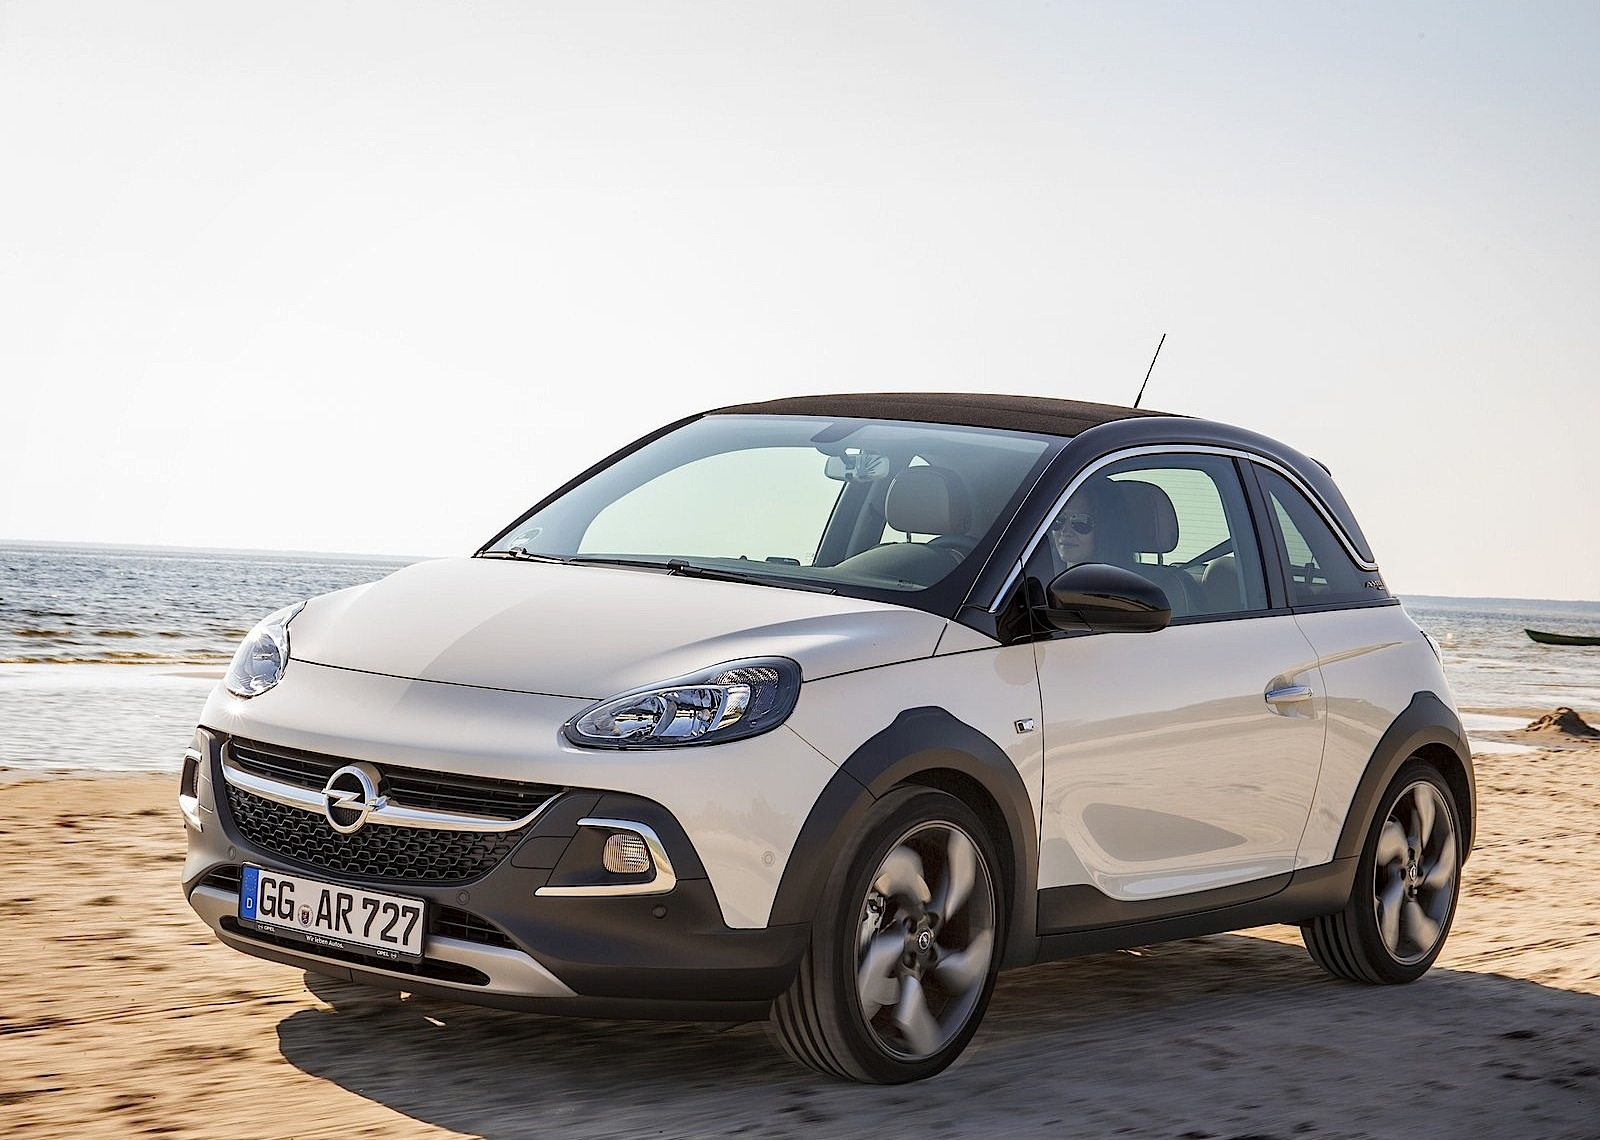 opel adam rocks specs photos 2014 2015 2016 2017 2018 2019 autoevolution. Black Bedroom Furniture Sets. Home Design Ideas